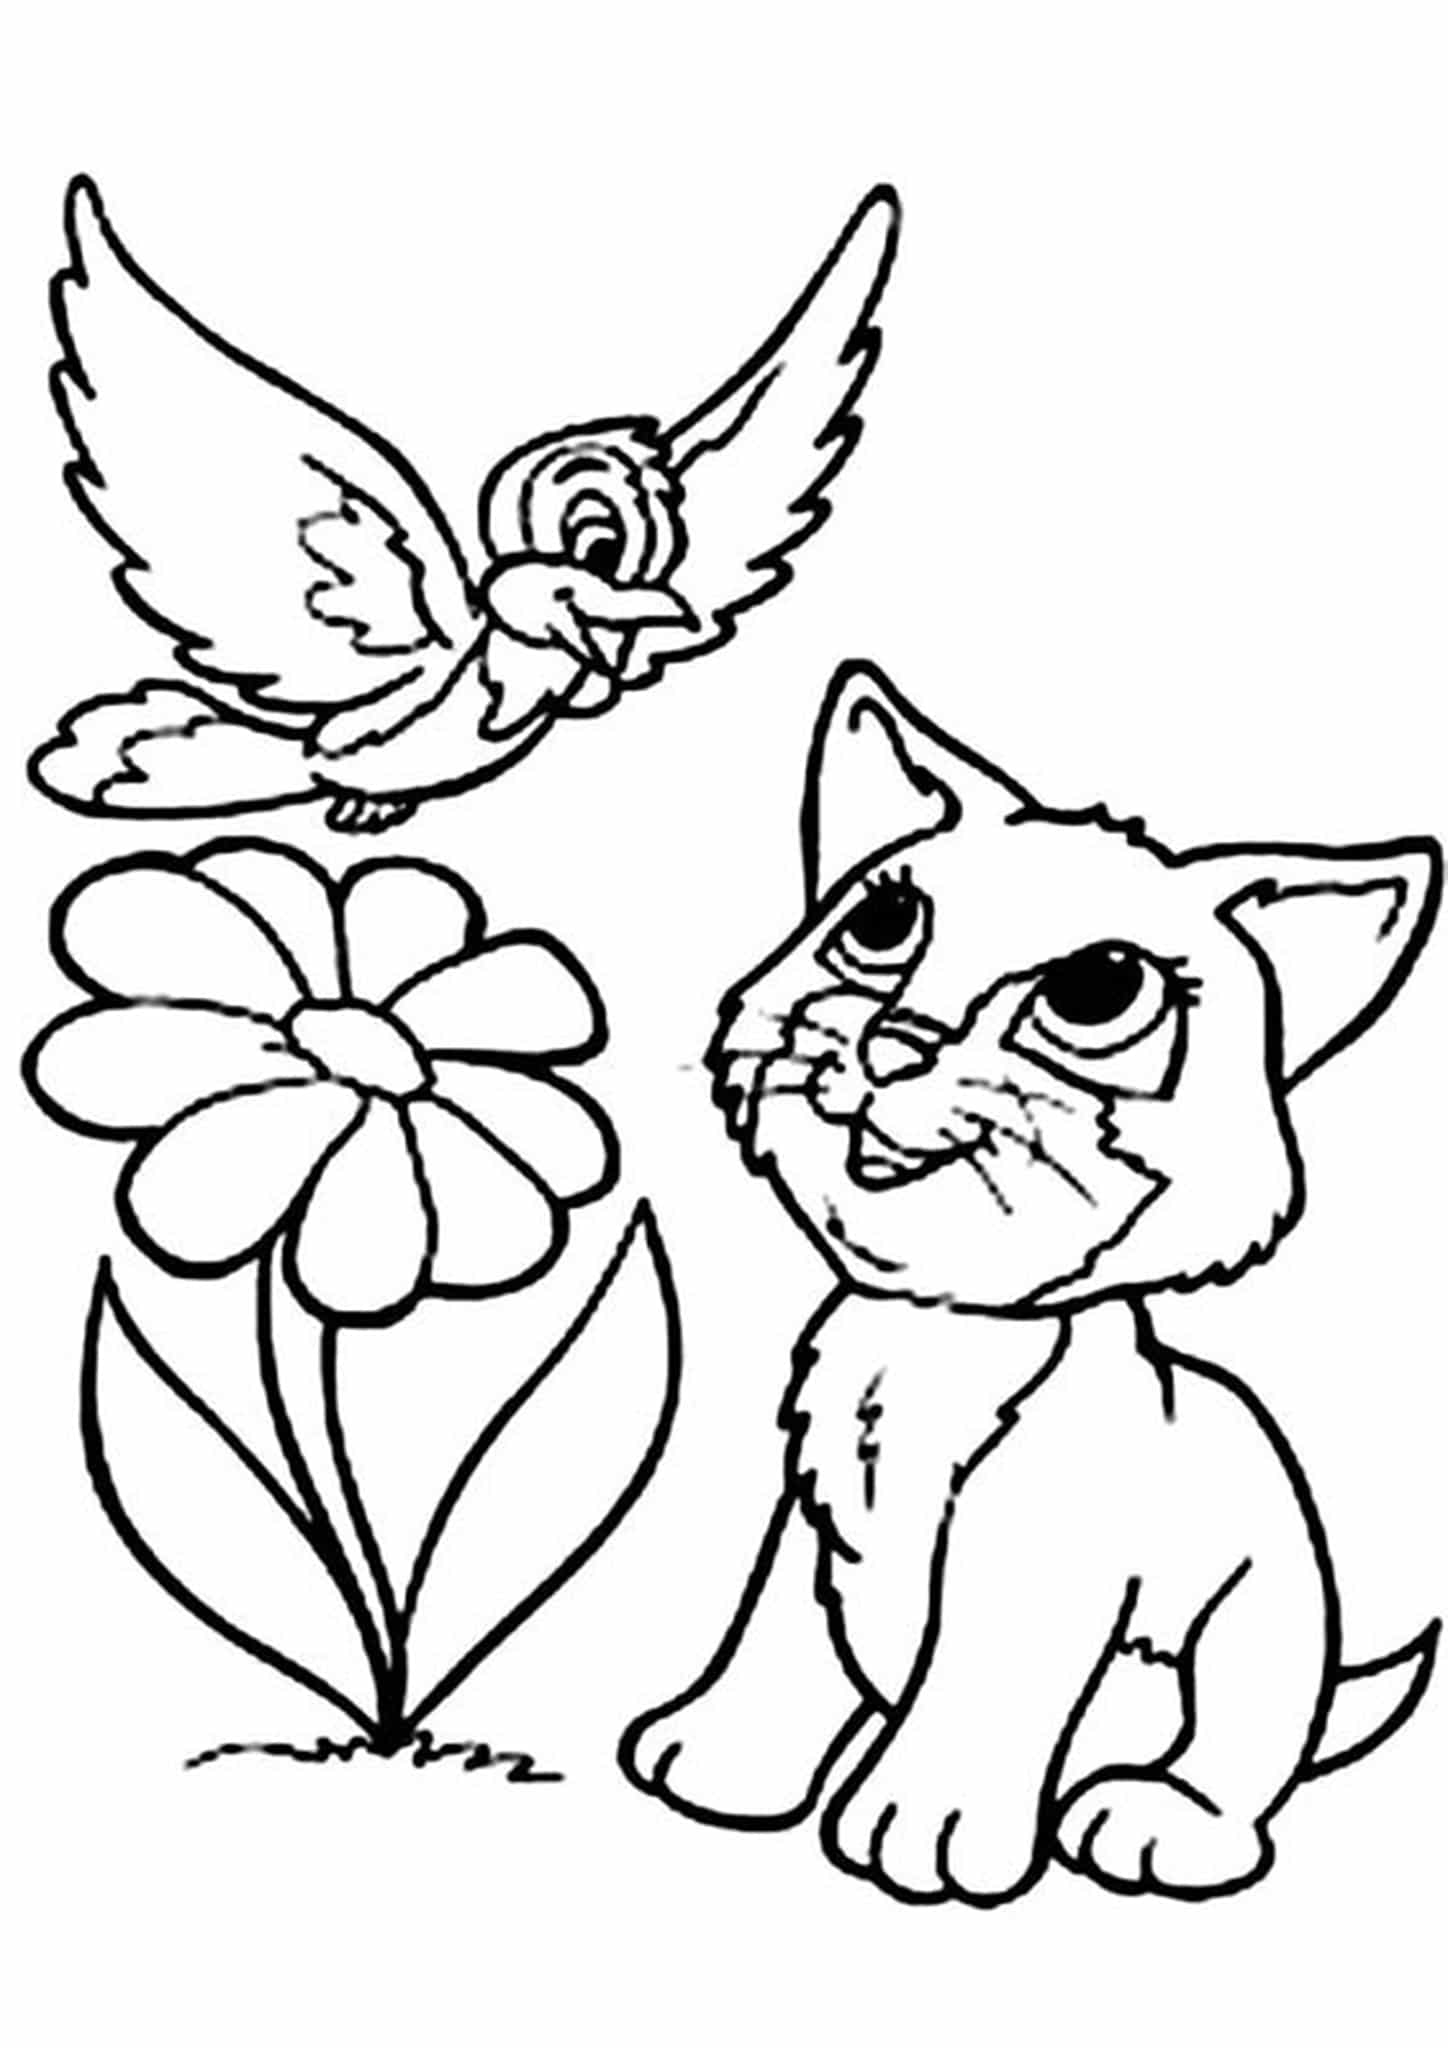 kitten coloring free printable kitten coloring pages for kids best kitten coloring